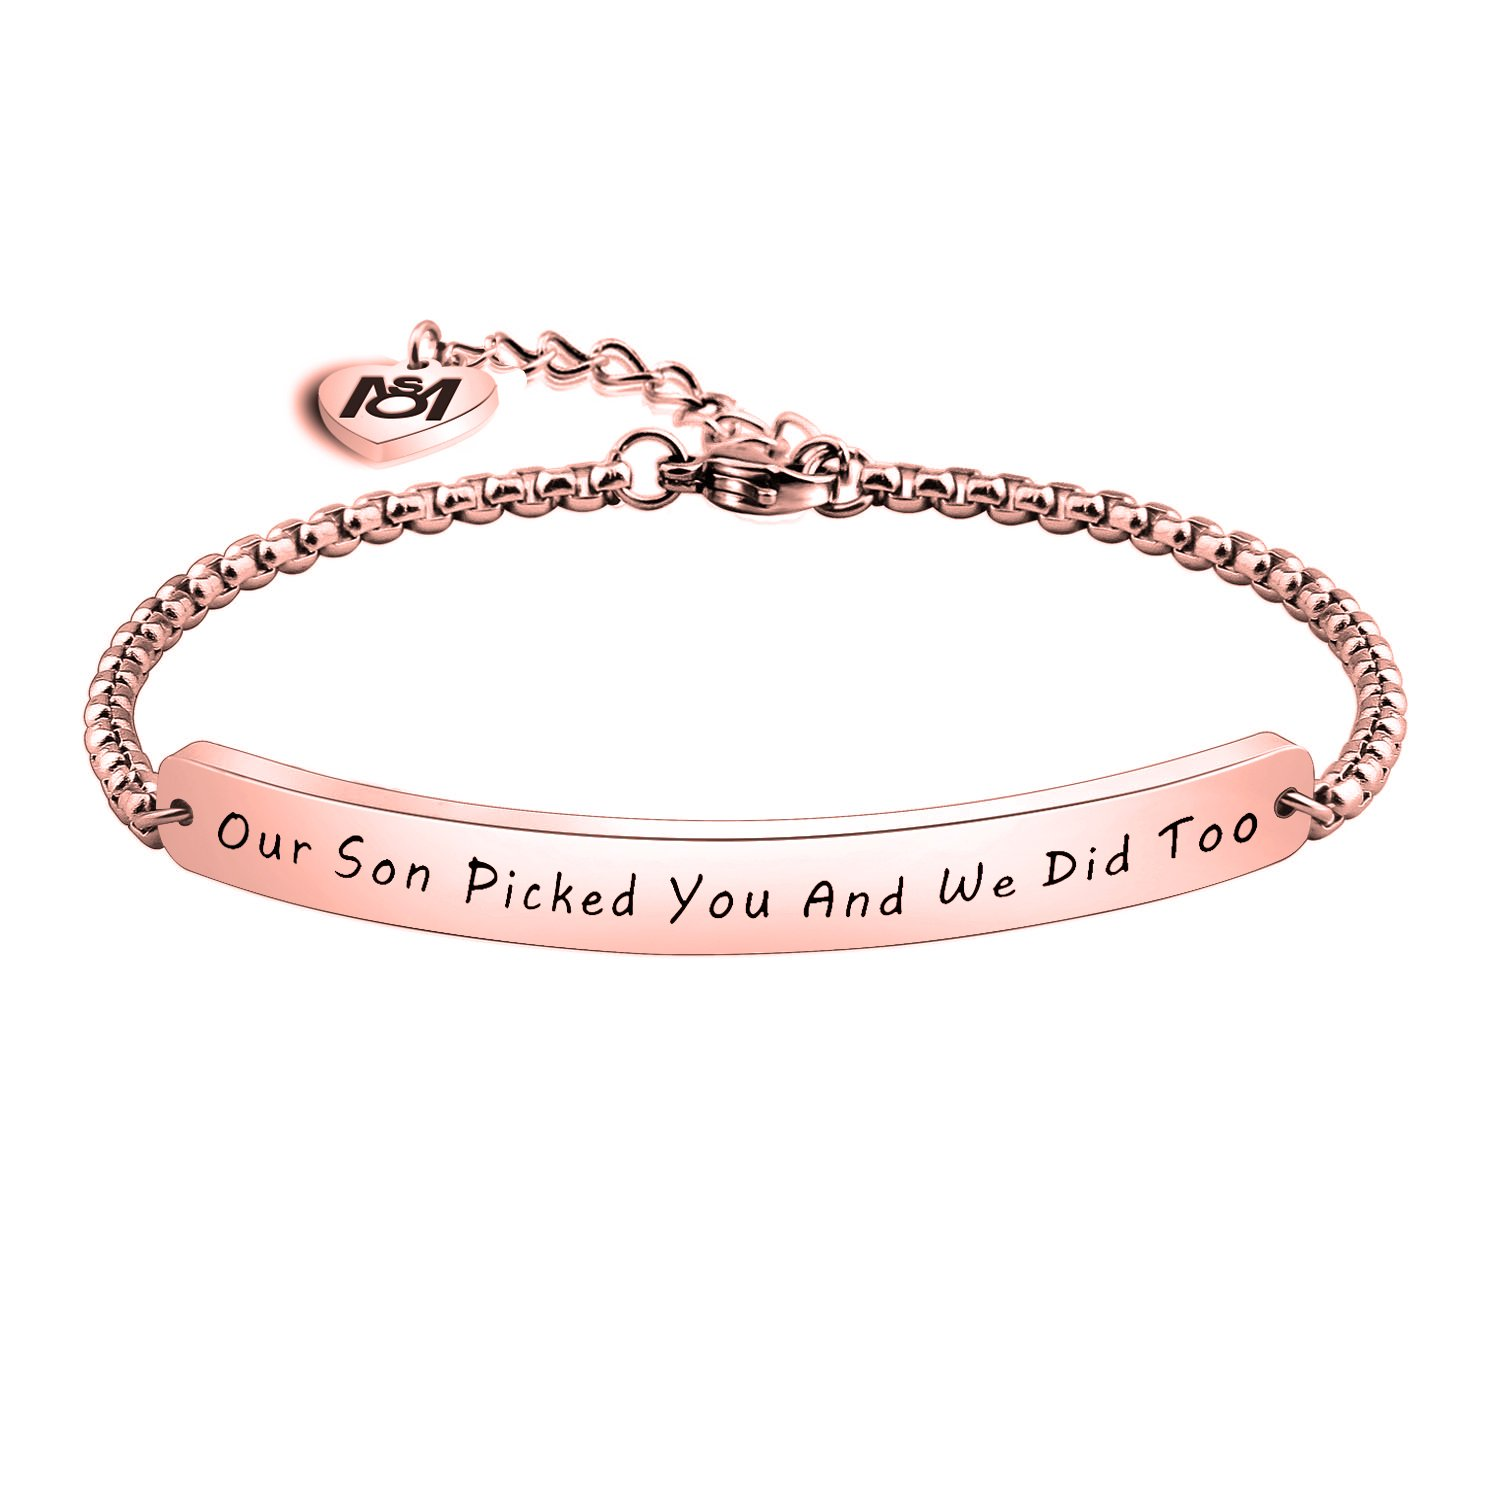 MYOSPARK Our Son Picked You And We Did Too Bracelet Daughter In Law Gift,Wedding Jewelry Gift for Bridal Shower (RG)